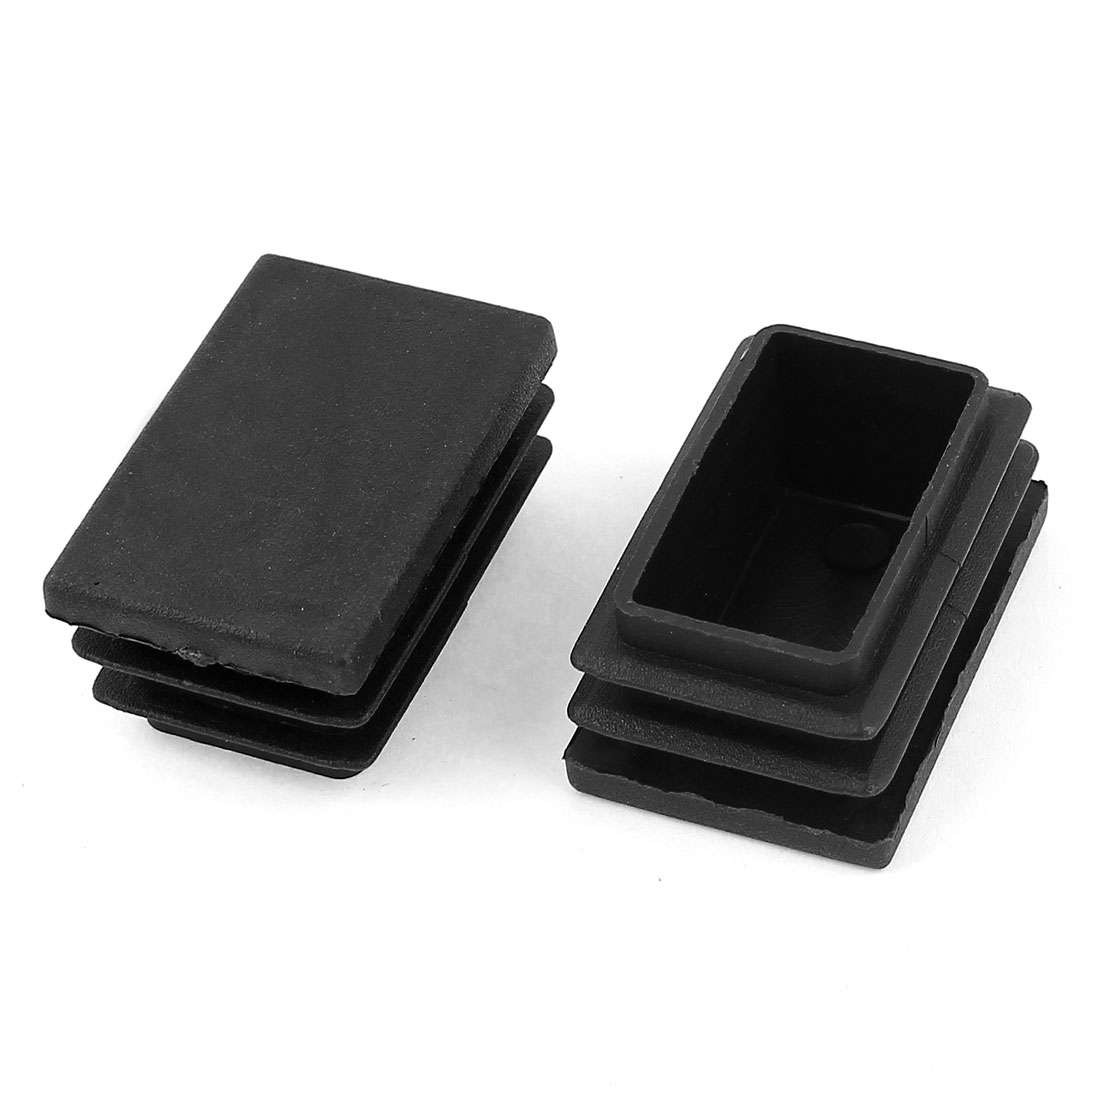 2 Pieces Black Plastic Rectangle Blanking End Caps Tubing TubeCover Inserts 25mm x 38mm